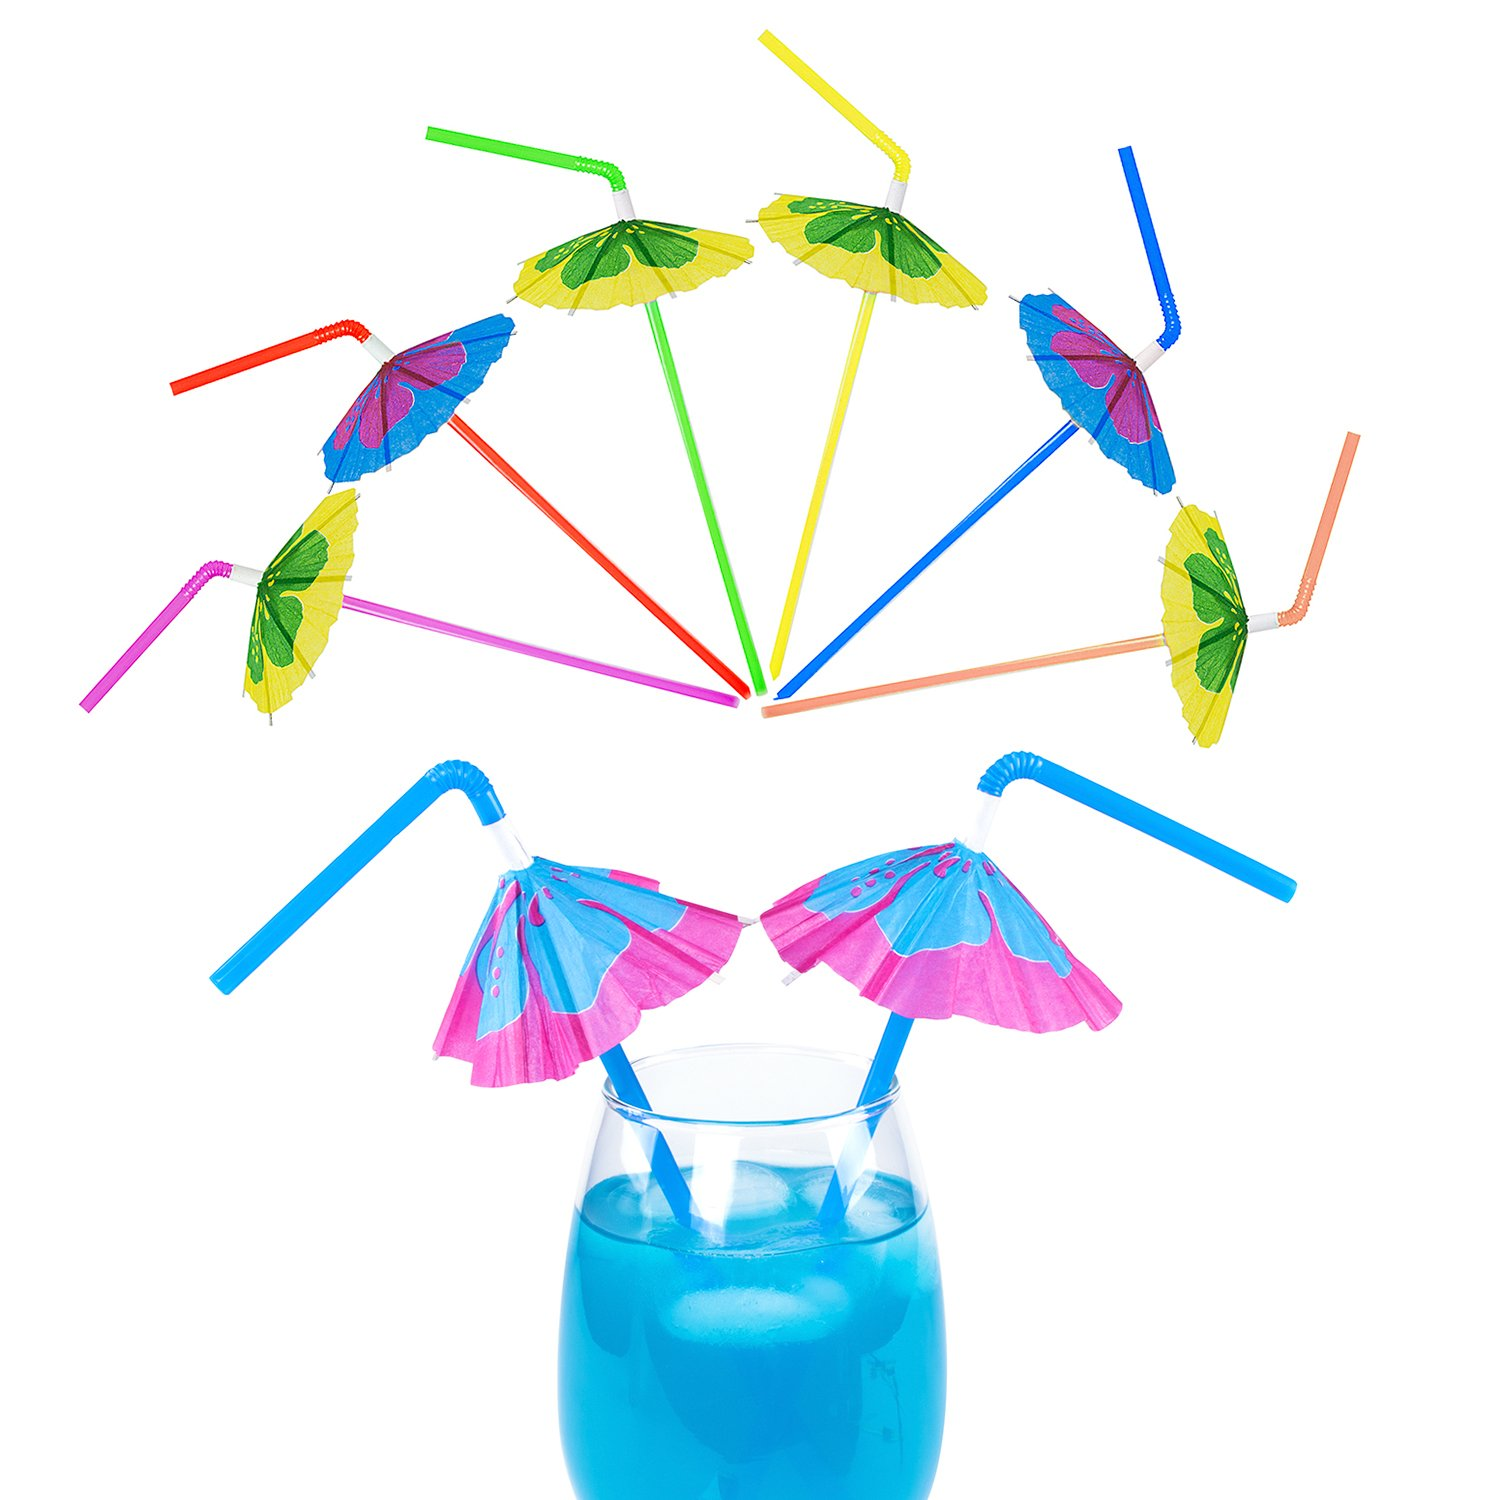 Multicolored Tropical Luau Parasol Hibiscus Print Umbrella Disposable Bendable Drinking Straws for Island Themed Party, Kitchen Supplies, Bars, Restaurants (48 Pack)